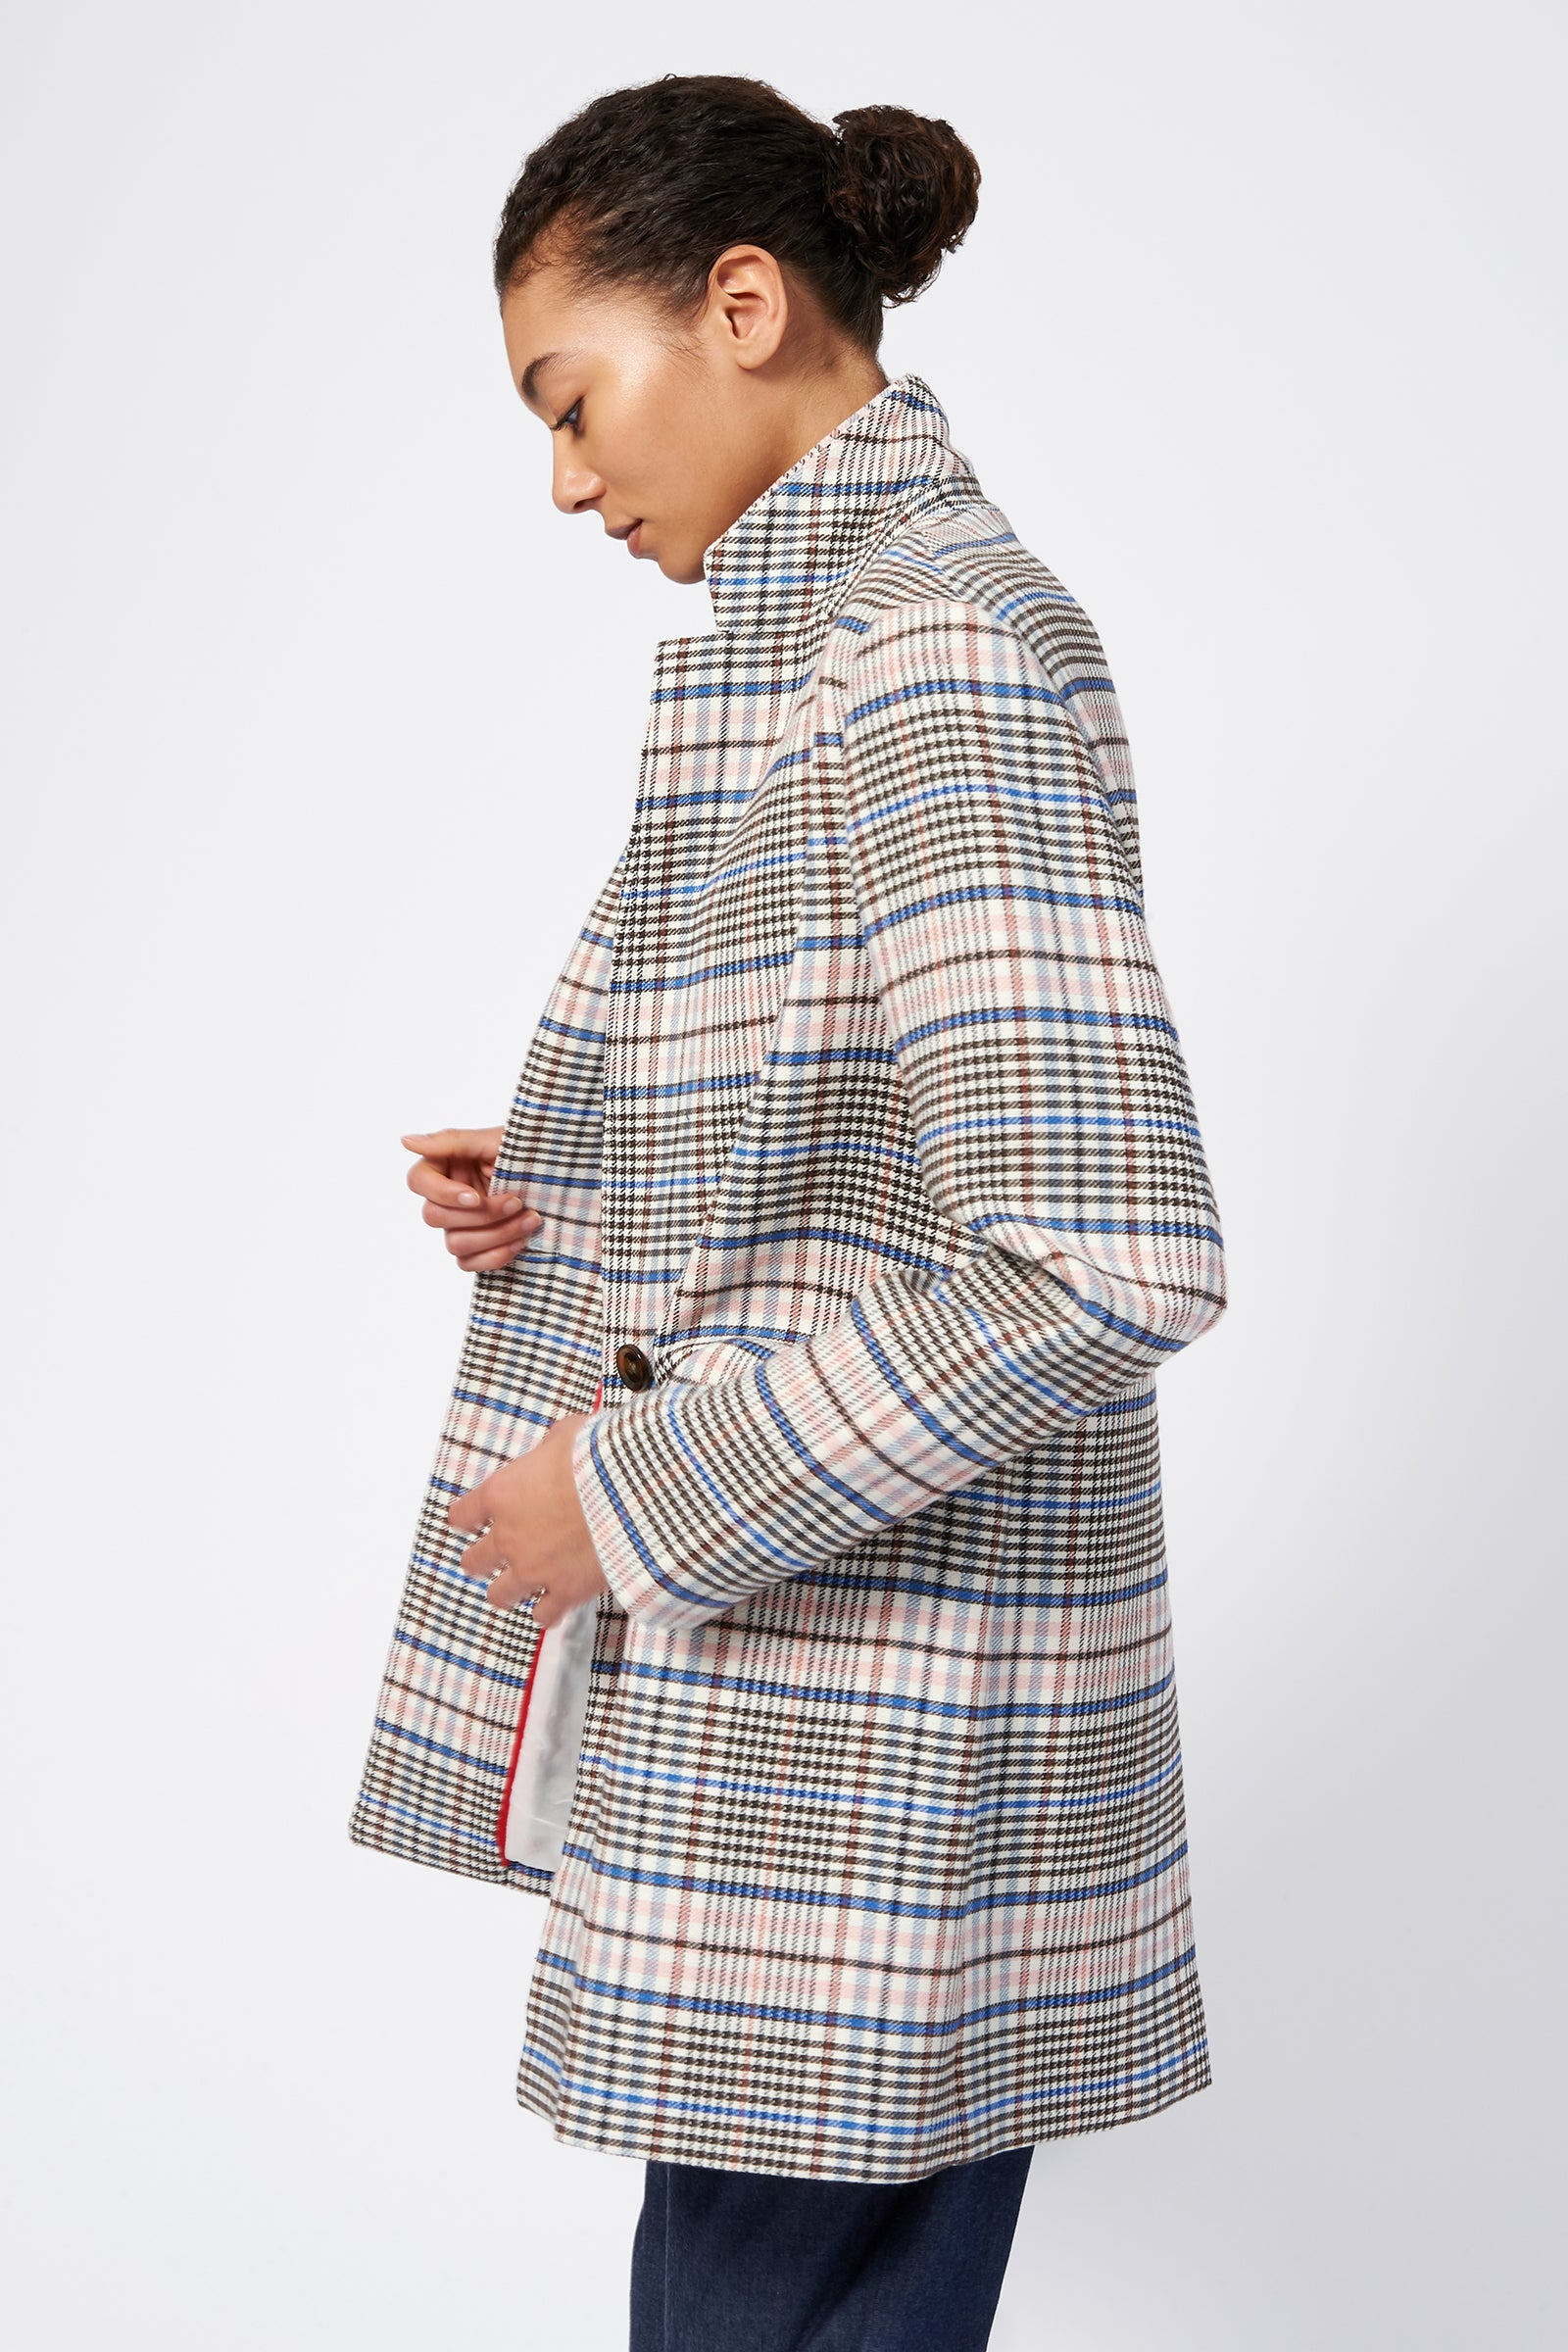 Kal Rieman Plaid Car Coat on Model Side View